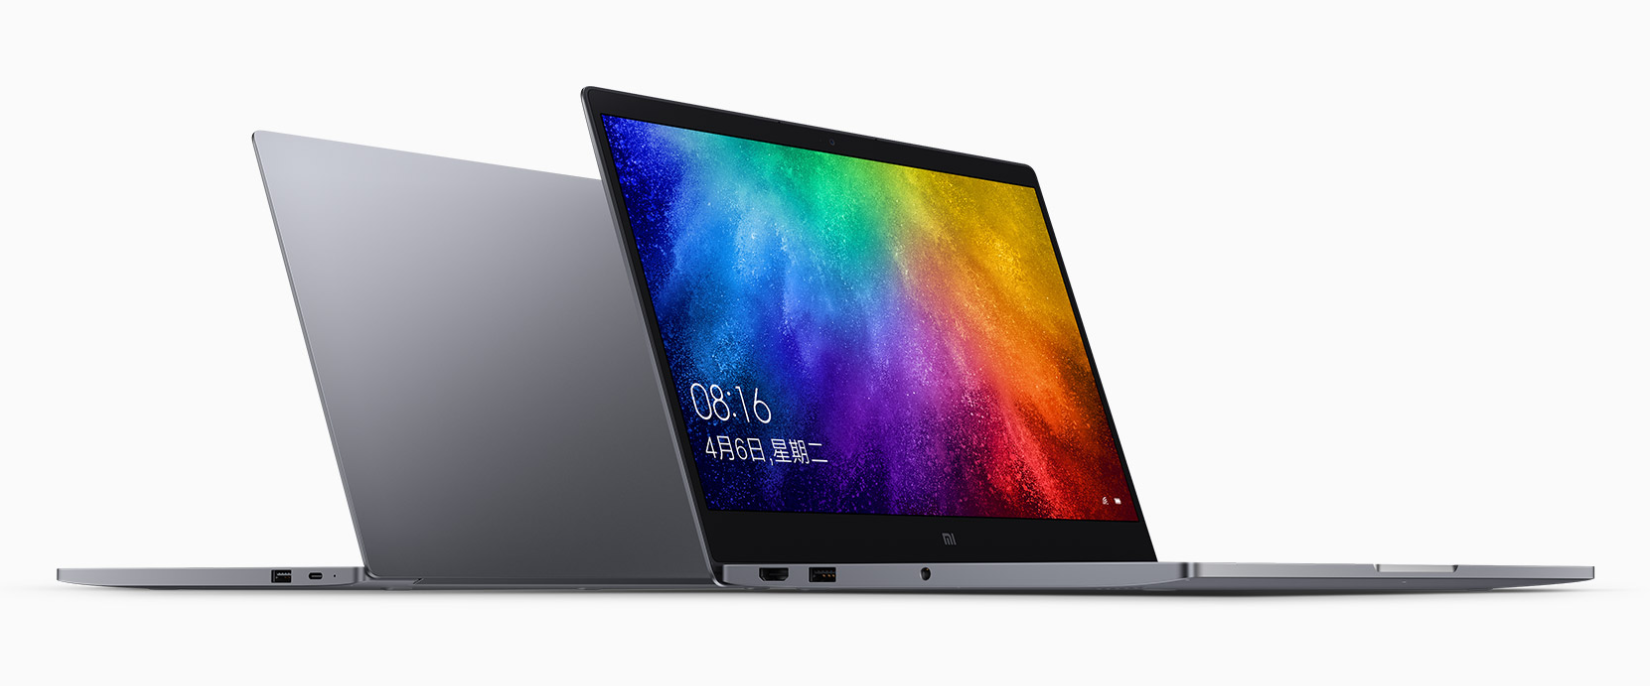 Xiaomi Mi Notebook Air 13.3″ i5 8250U 8/256 GB – Nvidia MX 250 – Banggood